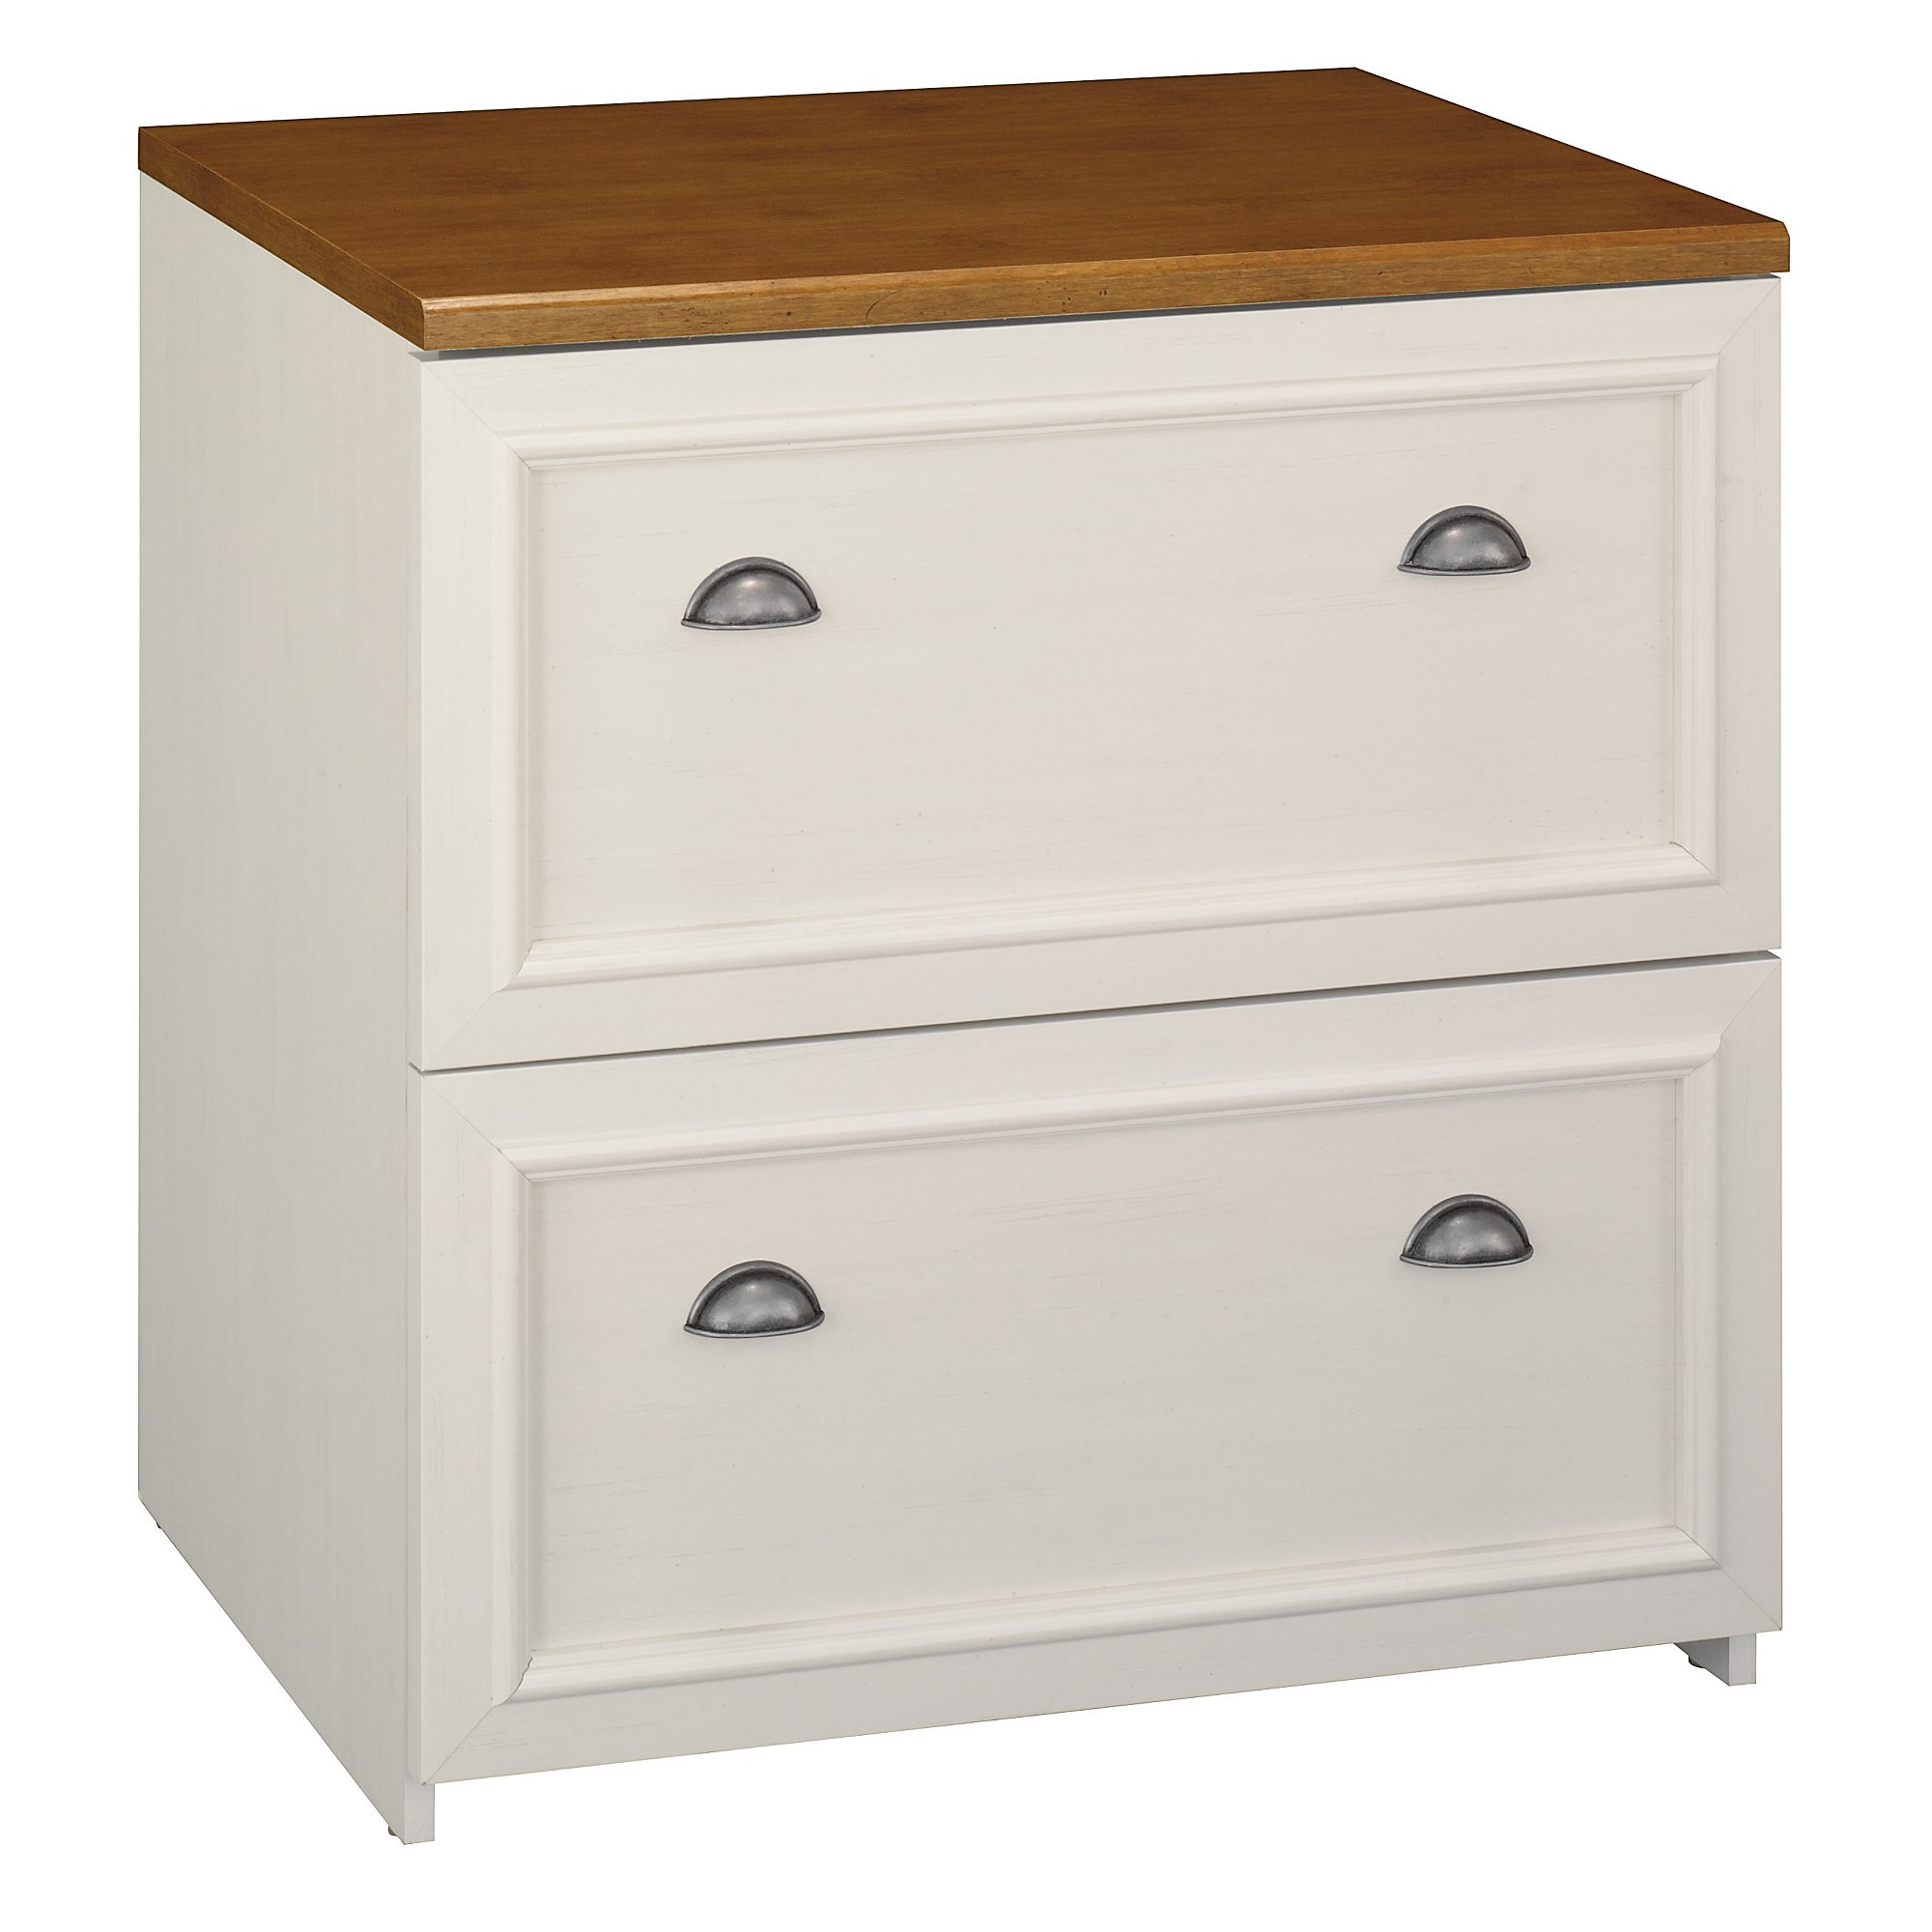 Superbe Bush Furniture Fairview Lateral File Cabinet In Antique White